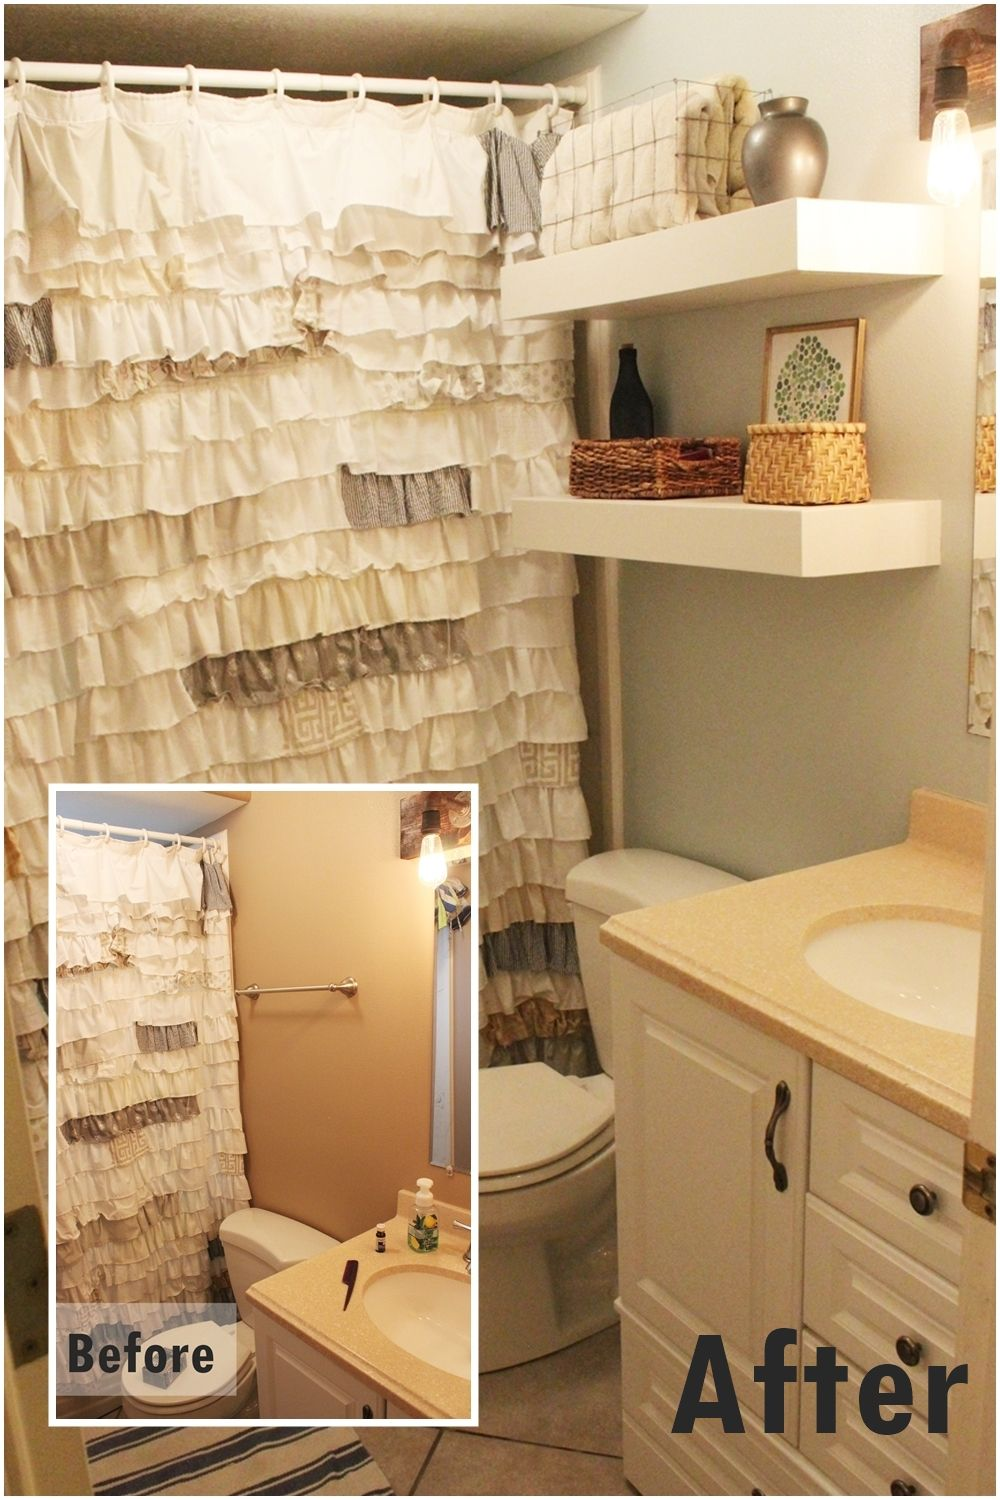 diy-floating-shelves-bathroom-storage